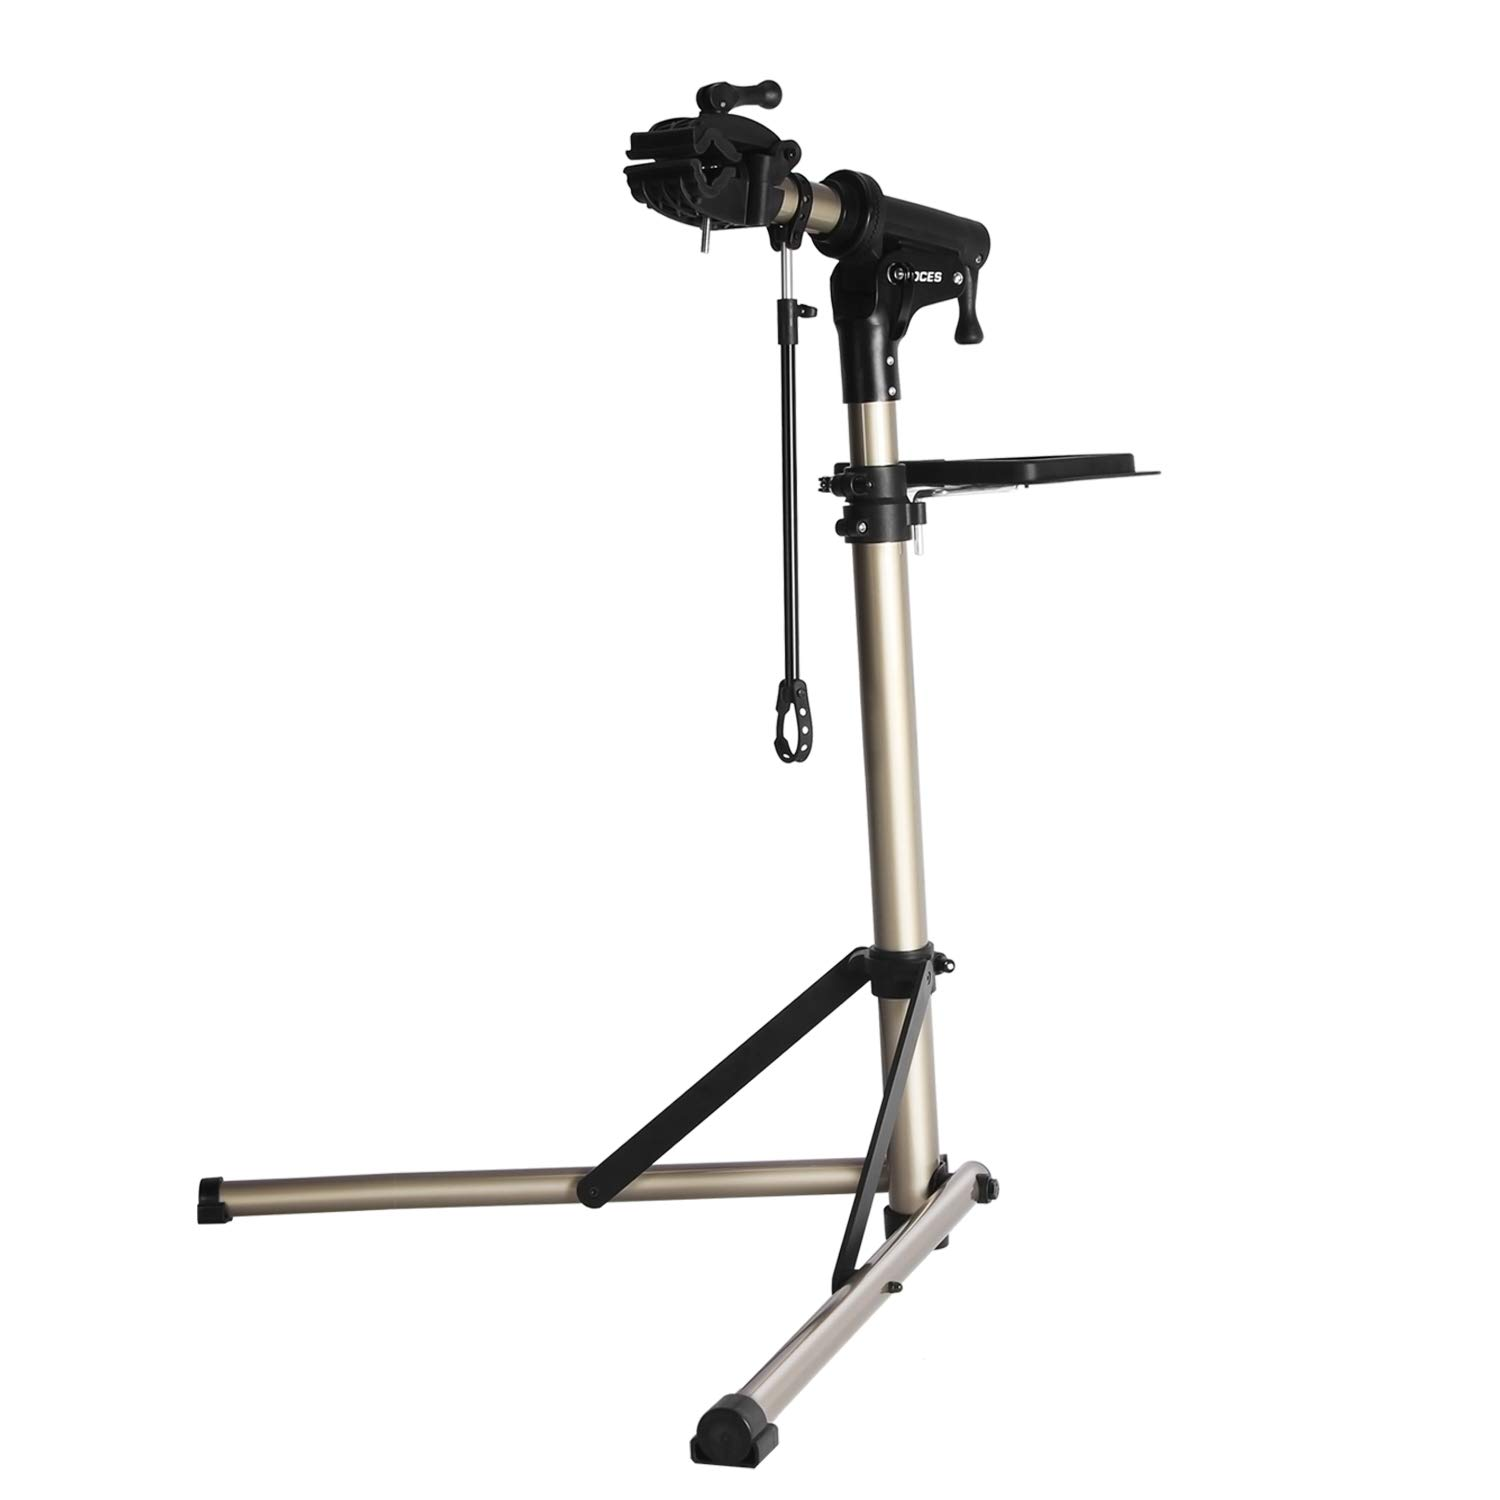 CXWXC Bike Repair Stand -Shop Home Bicycle Mechanic Maintenance Rack- Whole Aluminum Alloy- Height Adjustable (rs100) by CXWXC